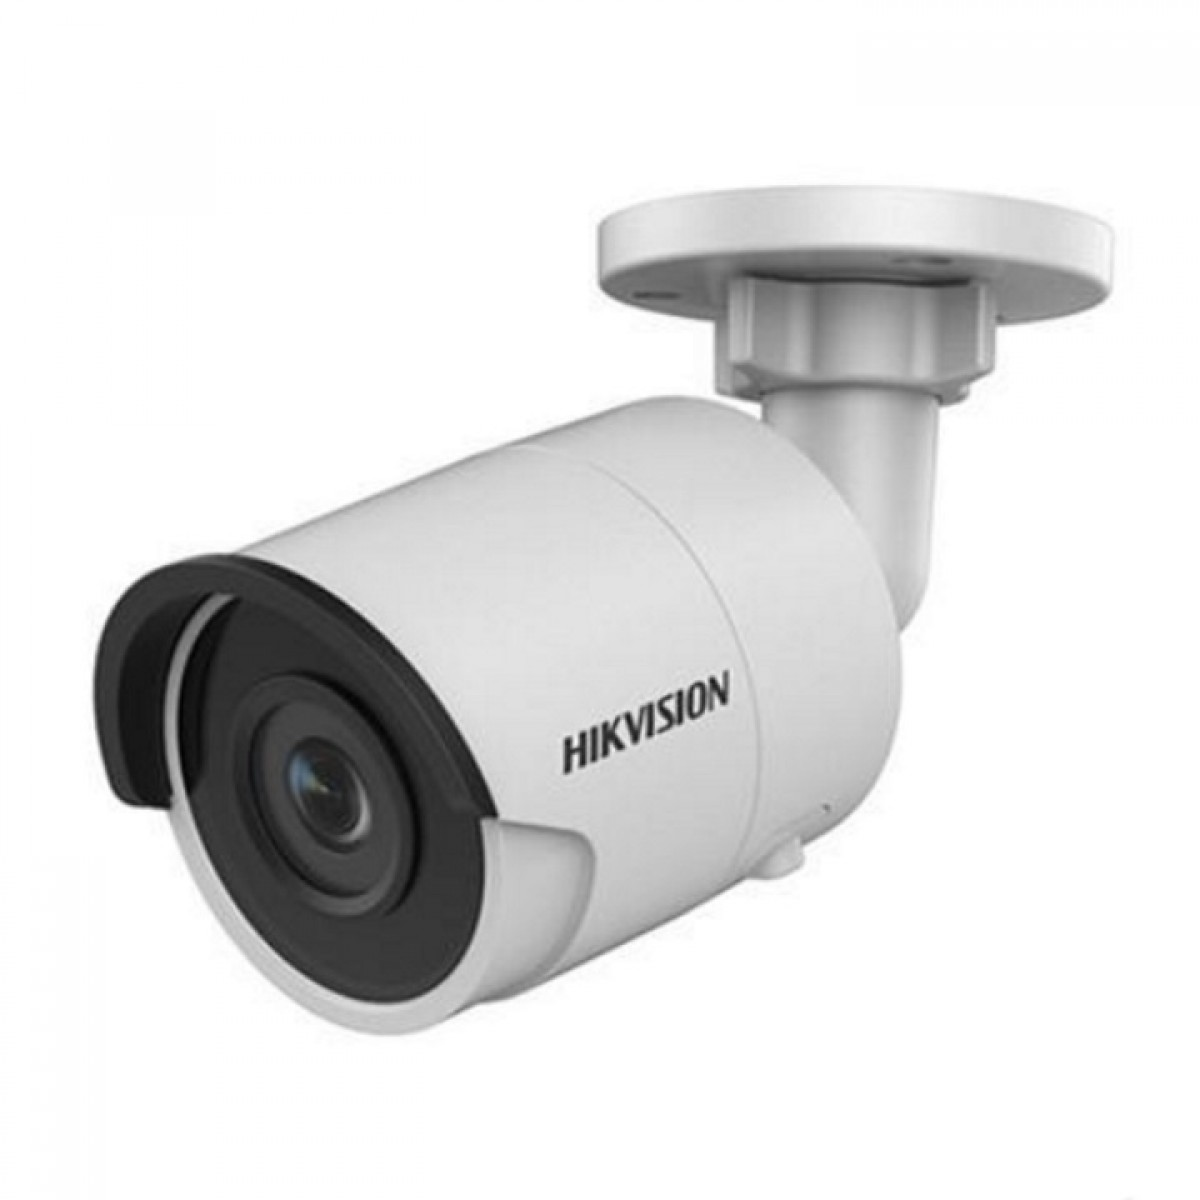 Hikvision DS-2CD2055FWD-I 4mm